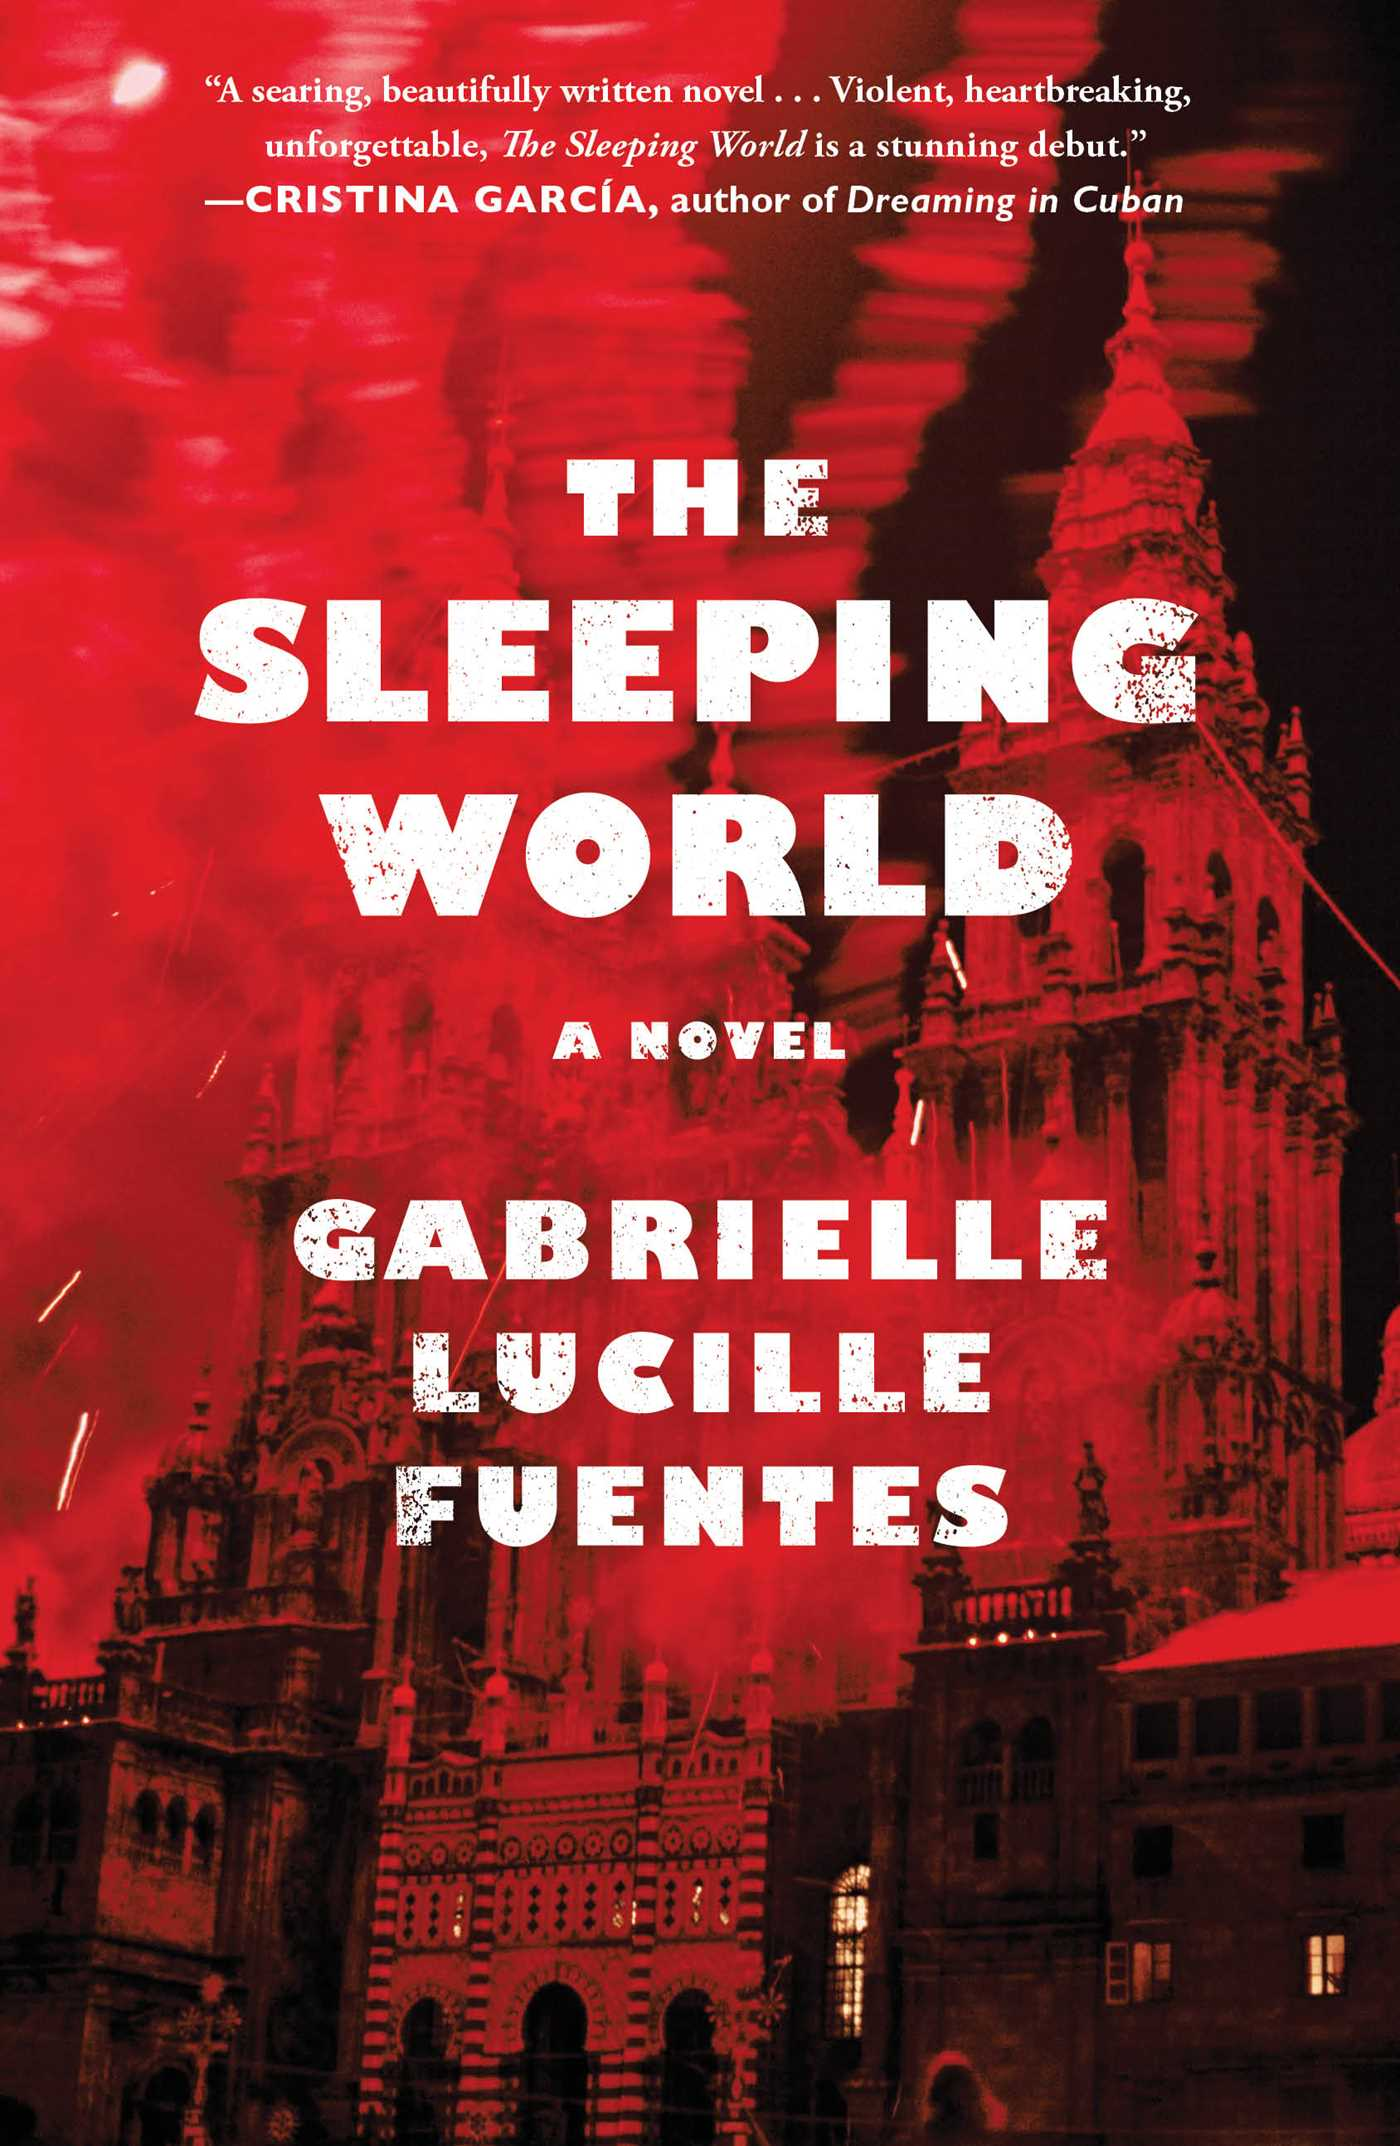 The sleeping world 9781501131677 hr